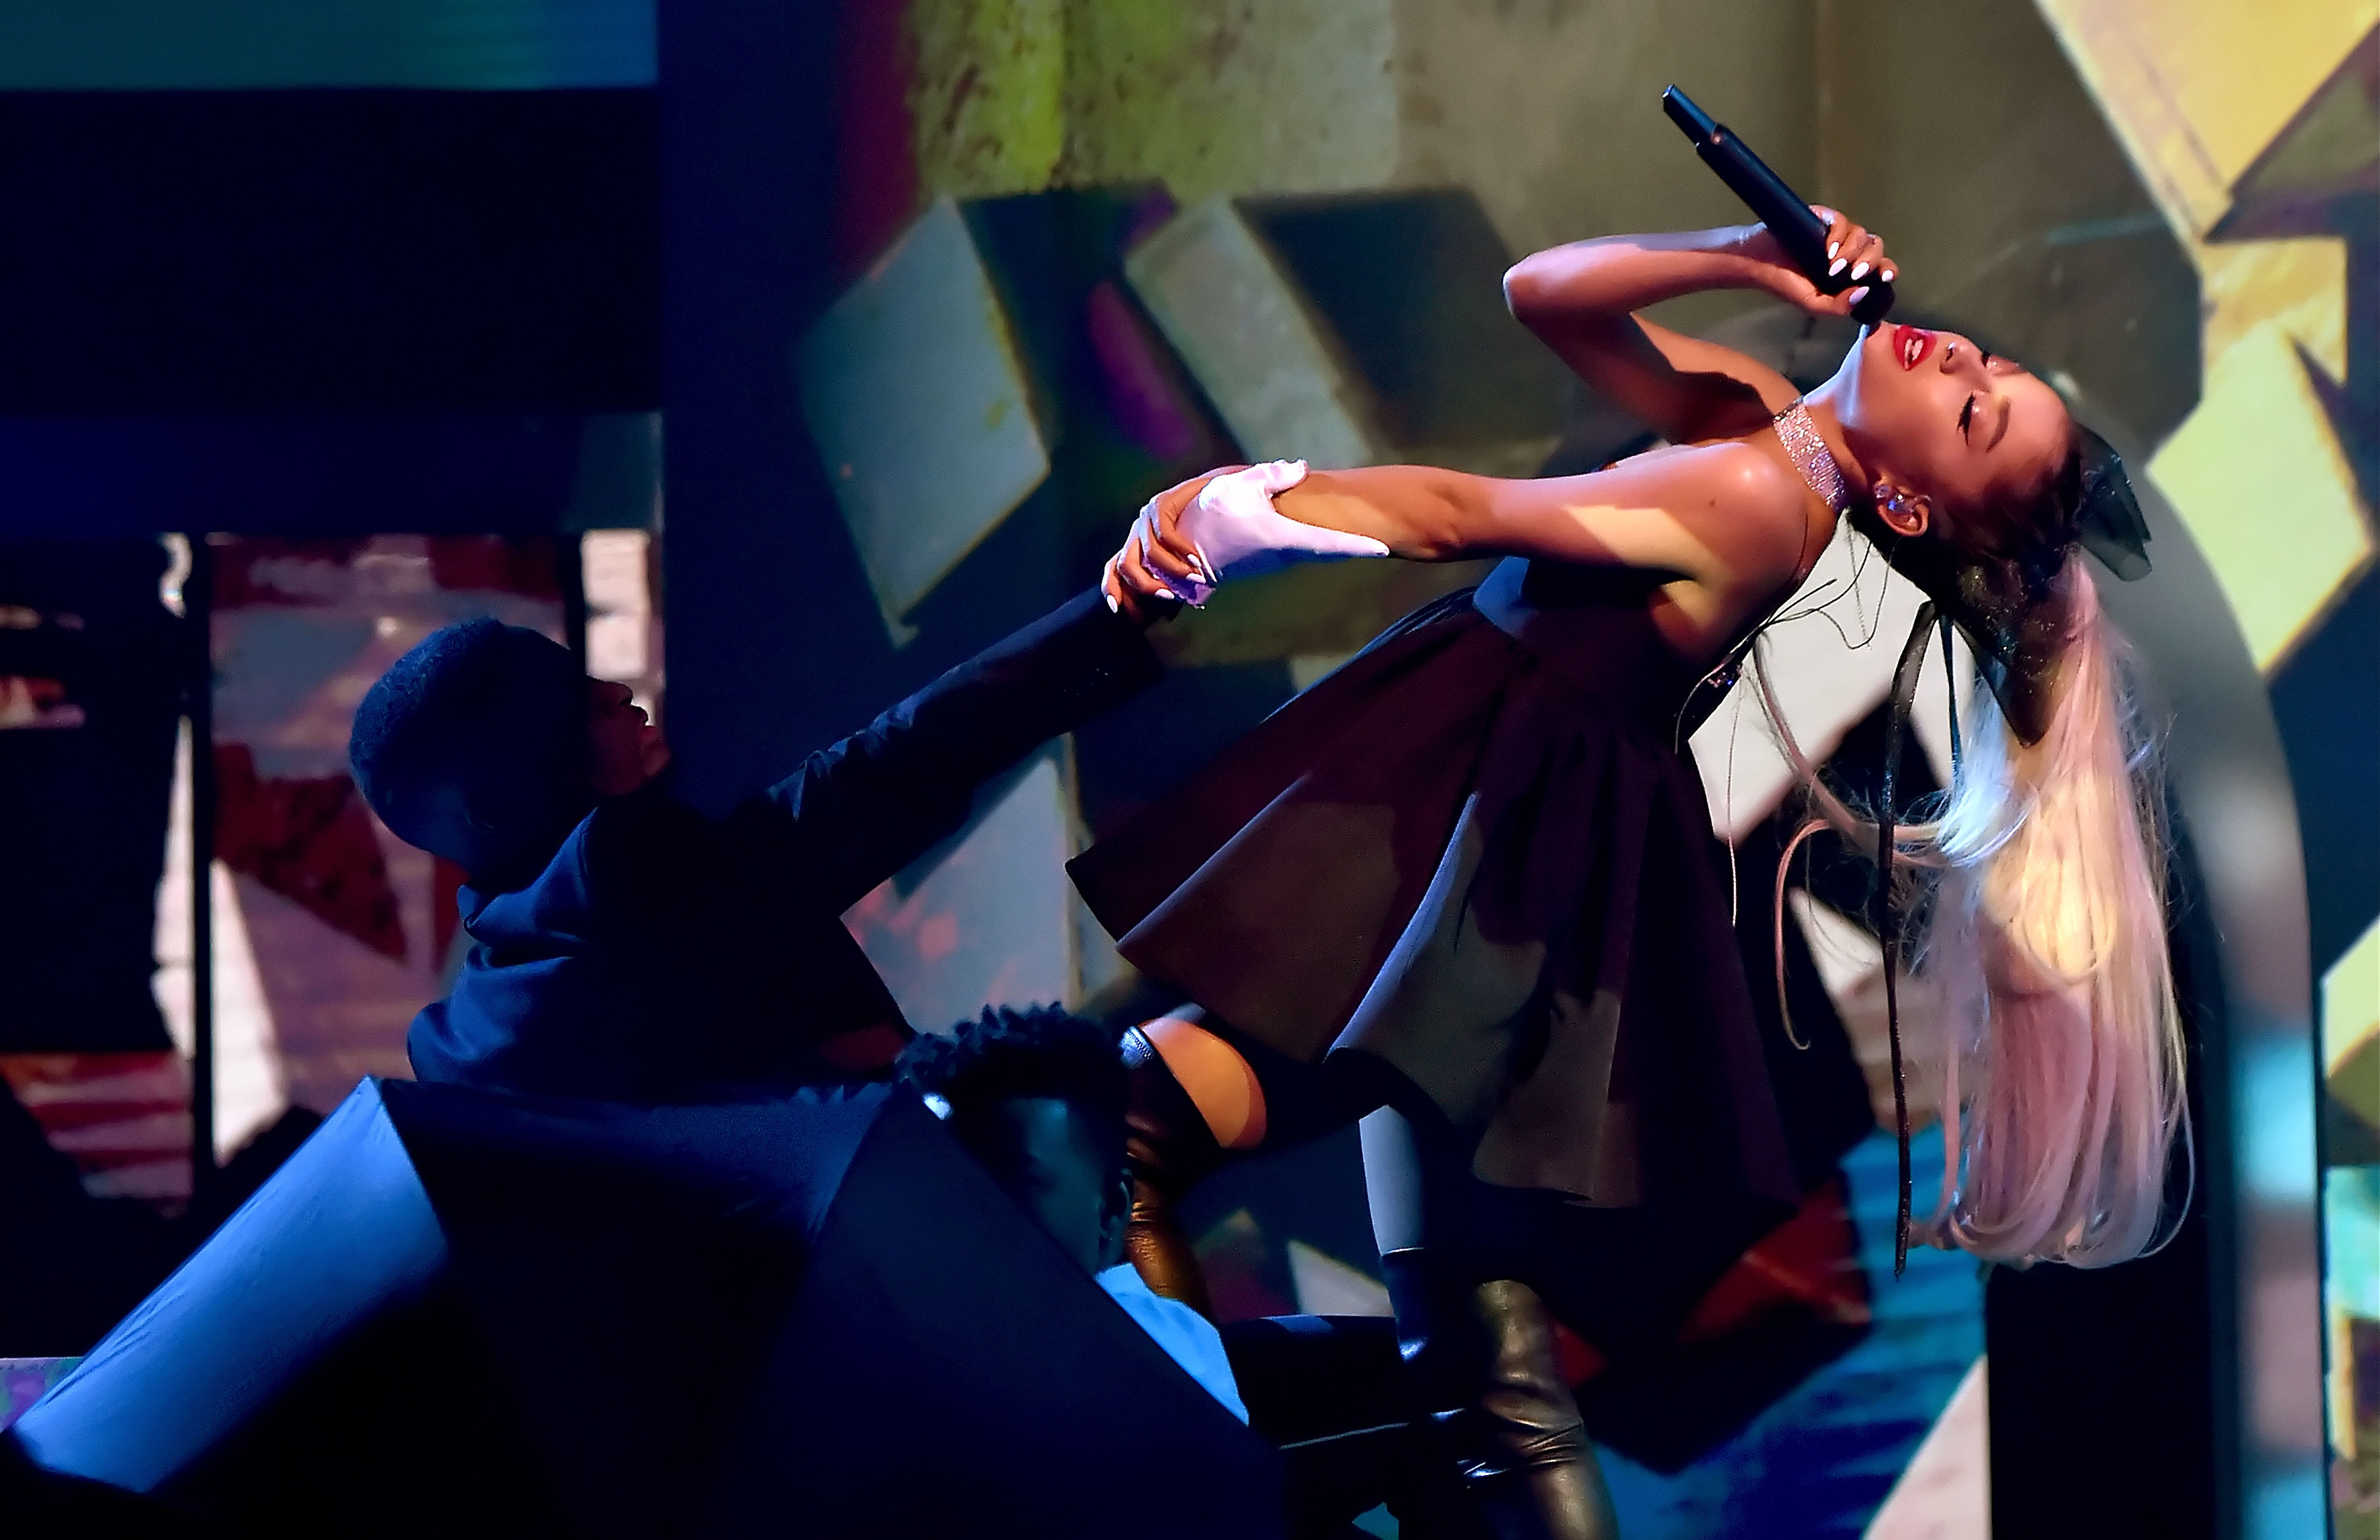 Ariana performing at the Billboard Music Awards over the